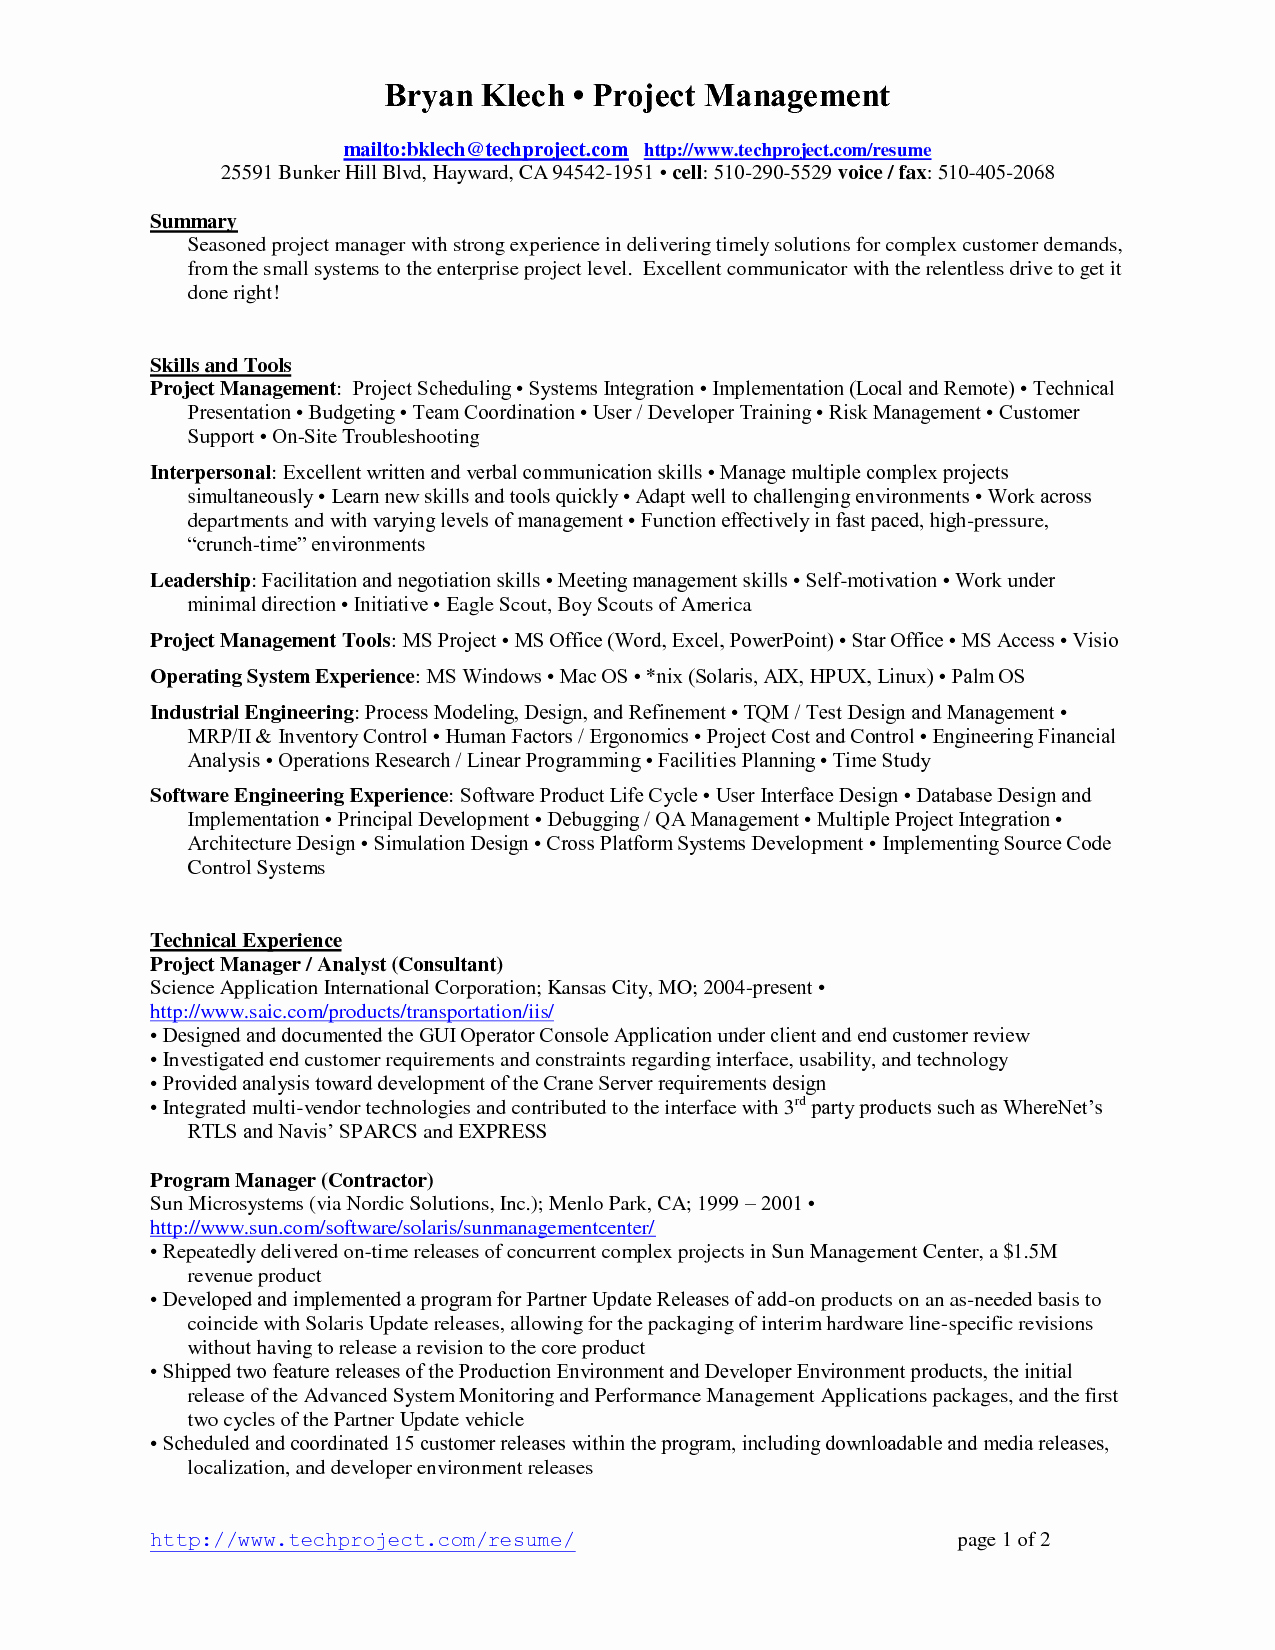 Naval Letter format Cheat Sheet Awesome Project Manager Resume Sample Doc Resume Ideas